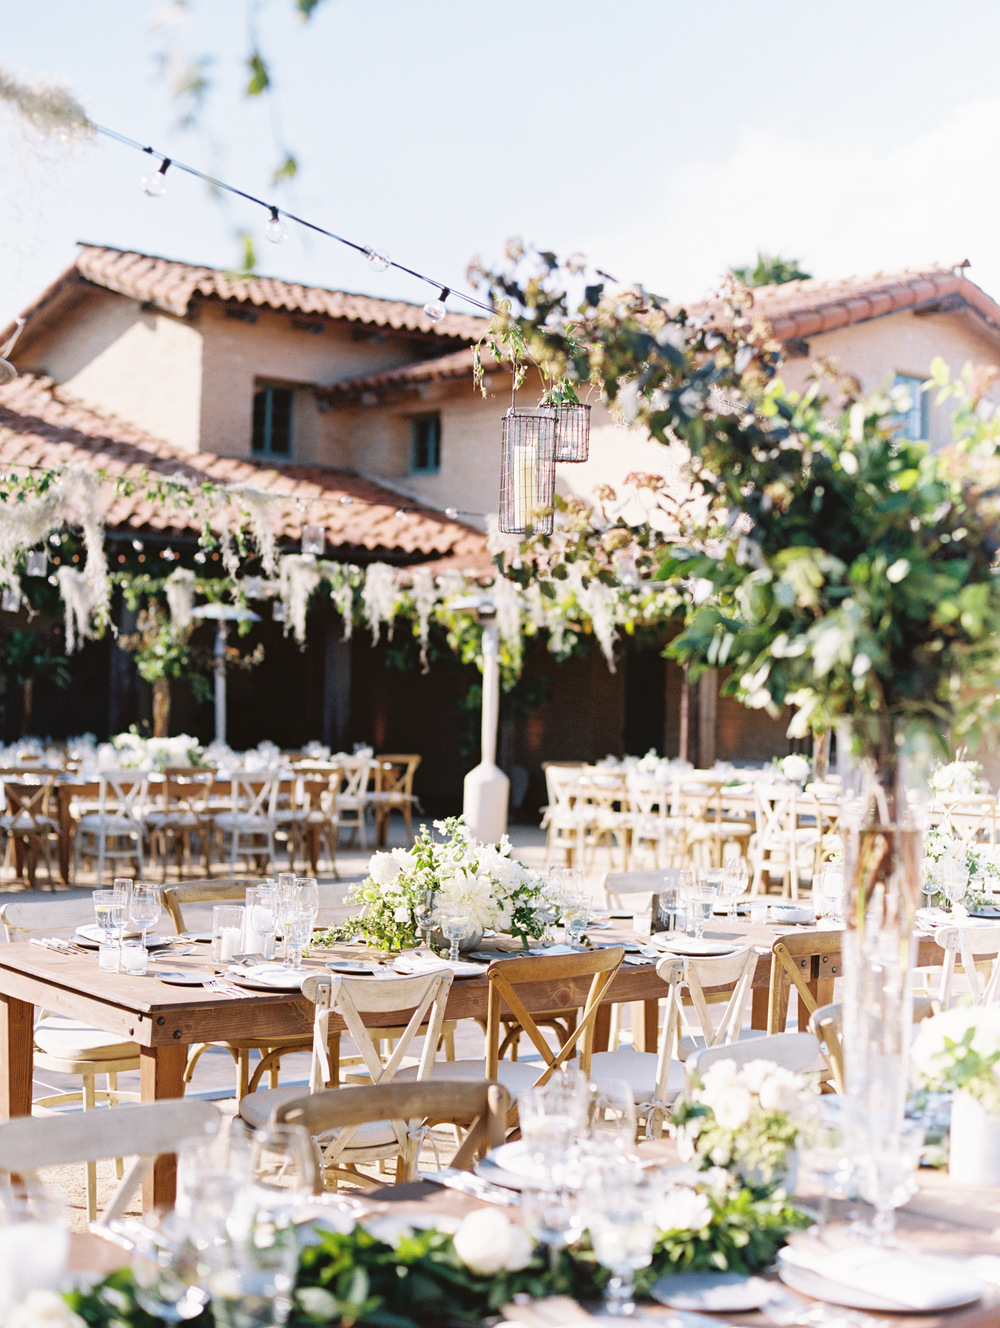 magnoliaeventdesign.com | Wedding at Santa Barbara Historical Museum | Magnolia Event Design | Pat Moyer Photography